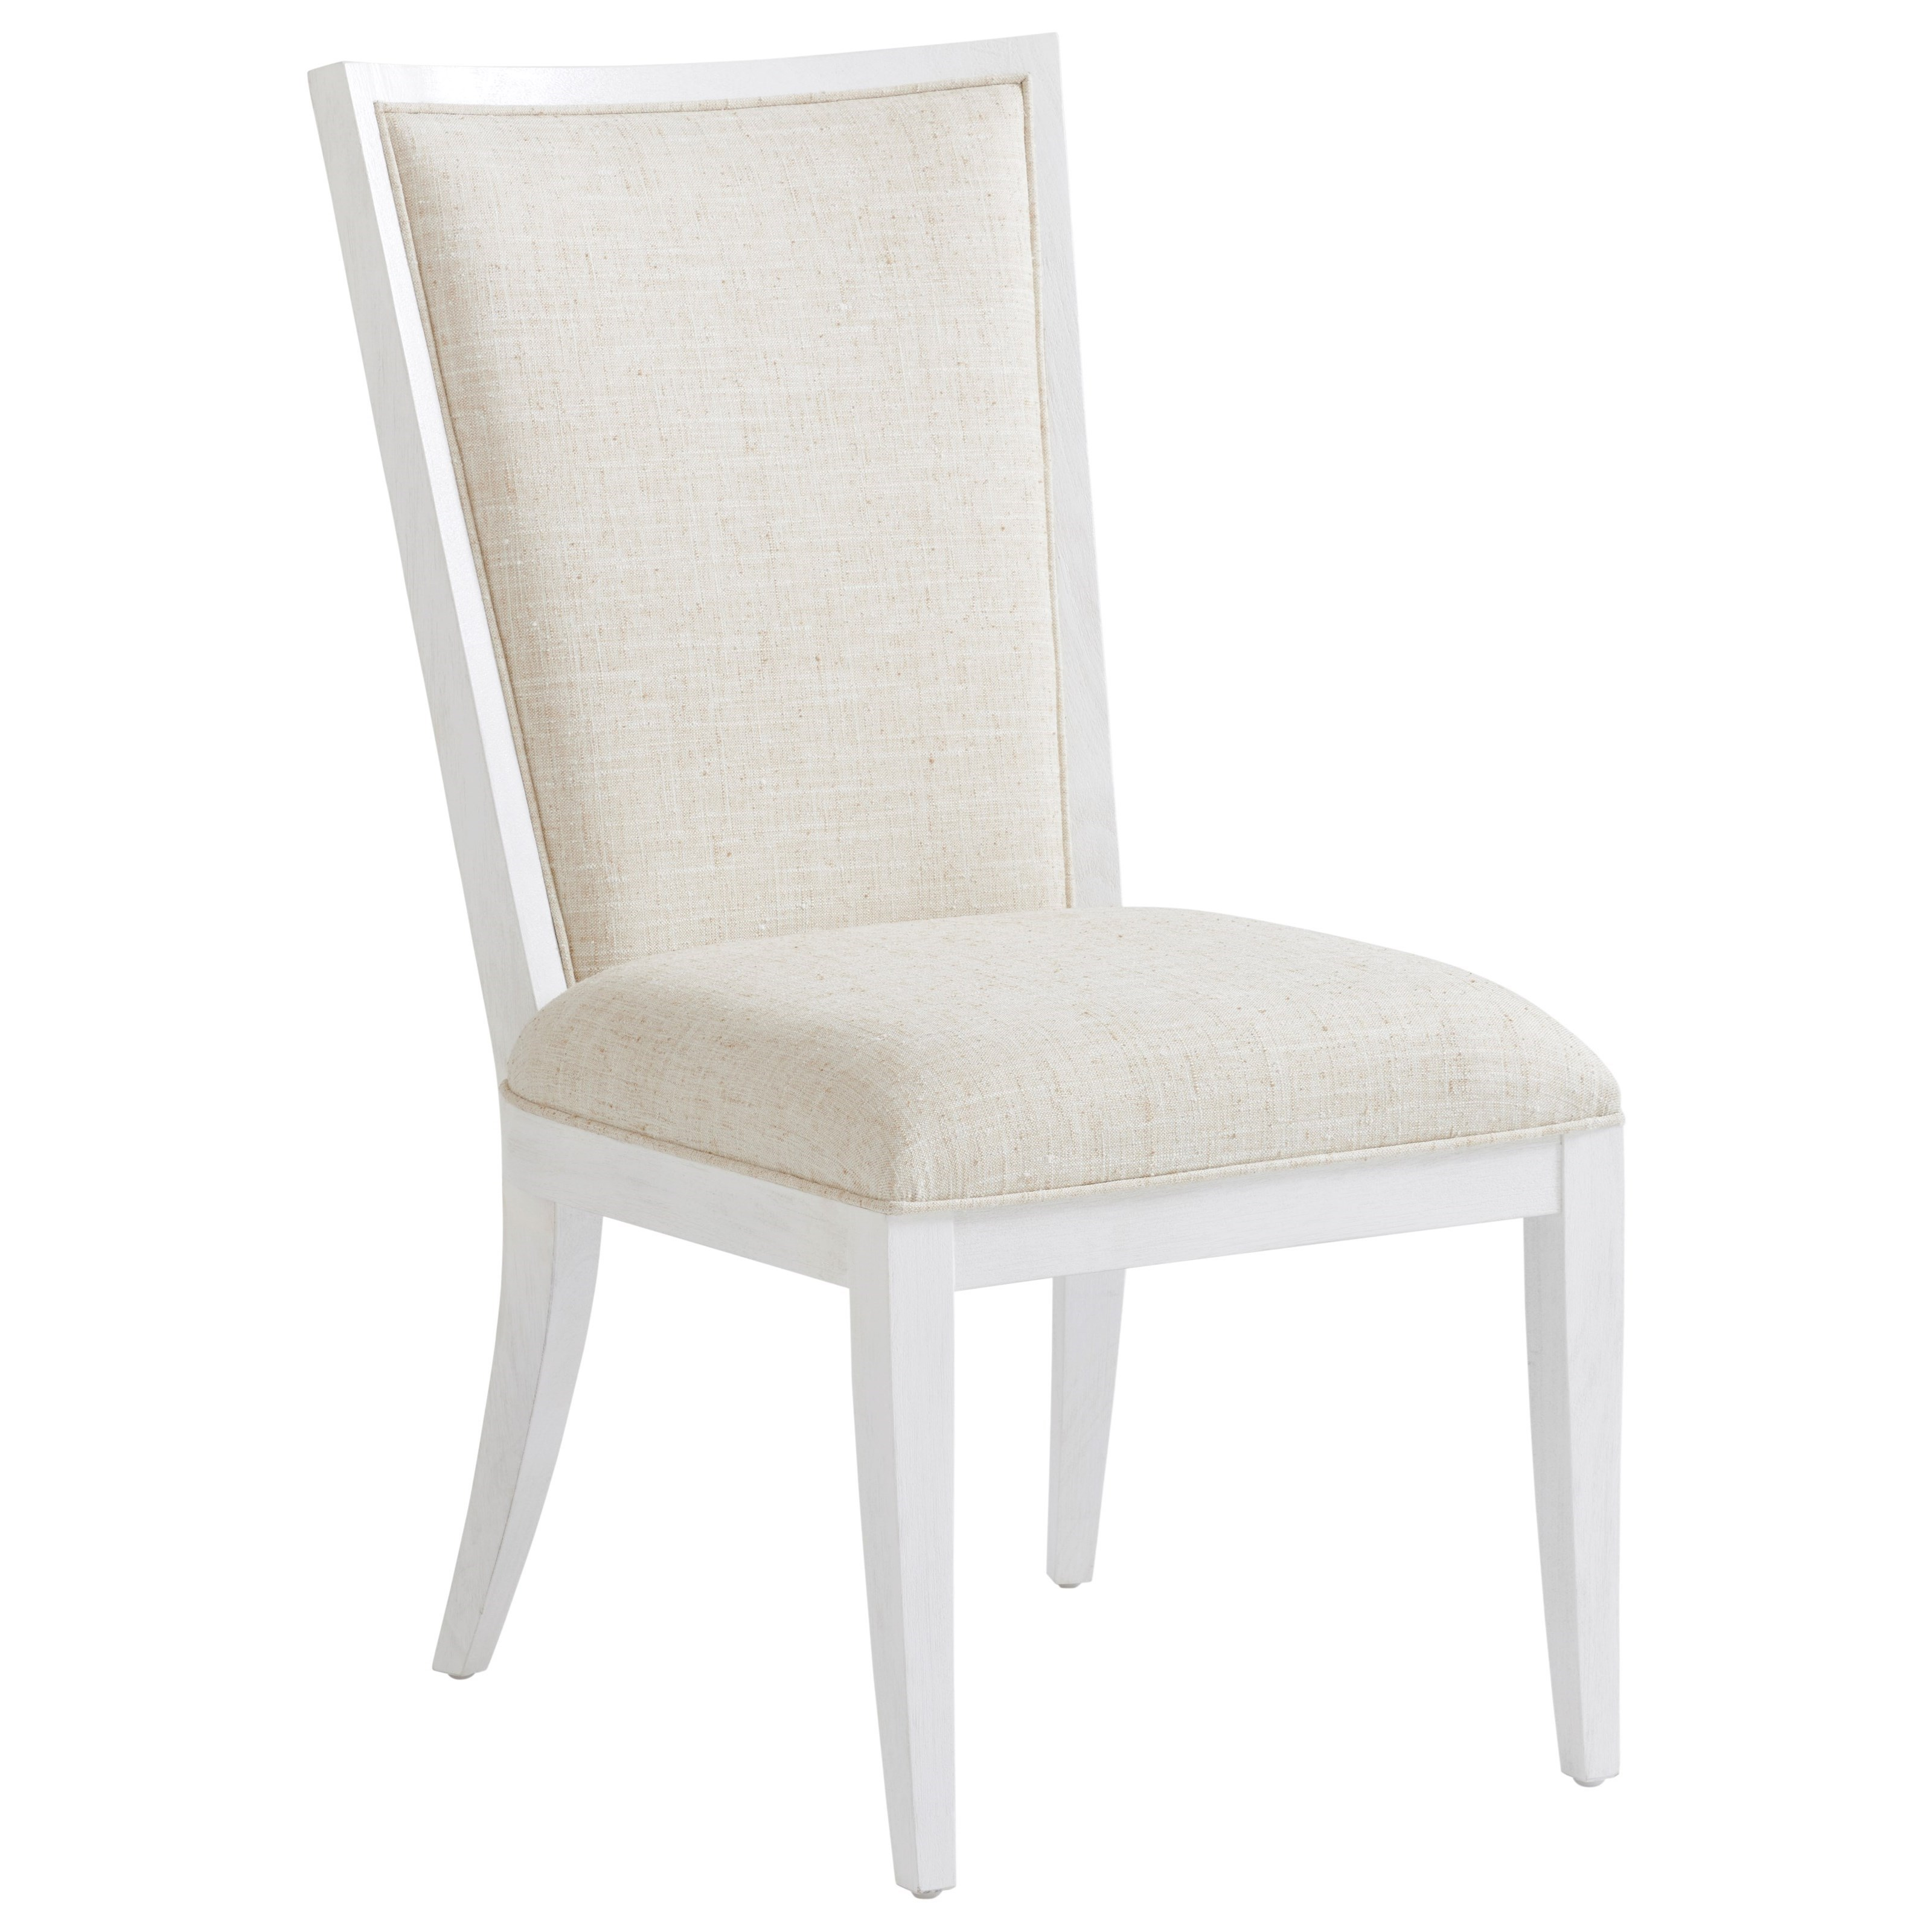 Sea Winds Upholstered Side Chair in Sanibel Fabric